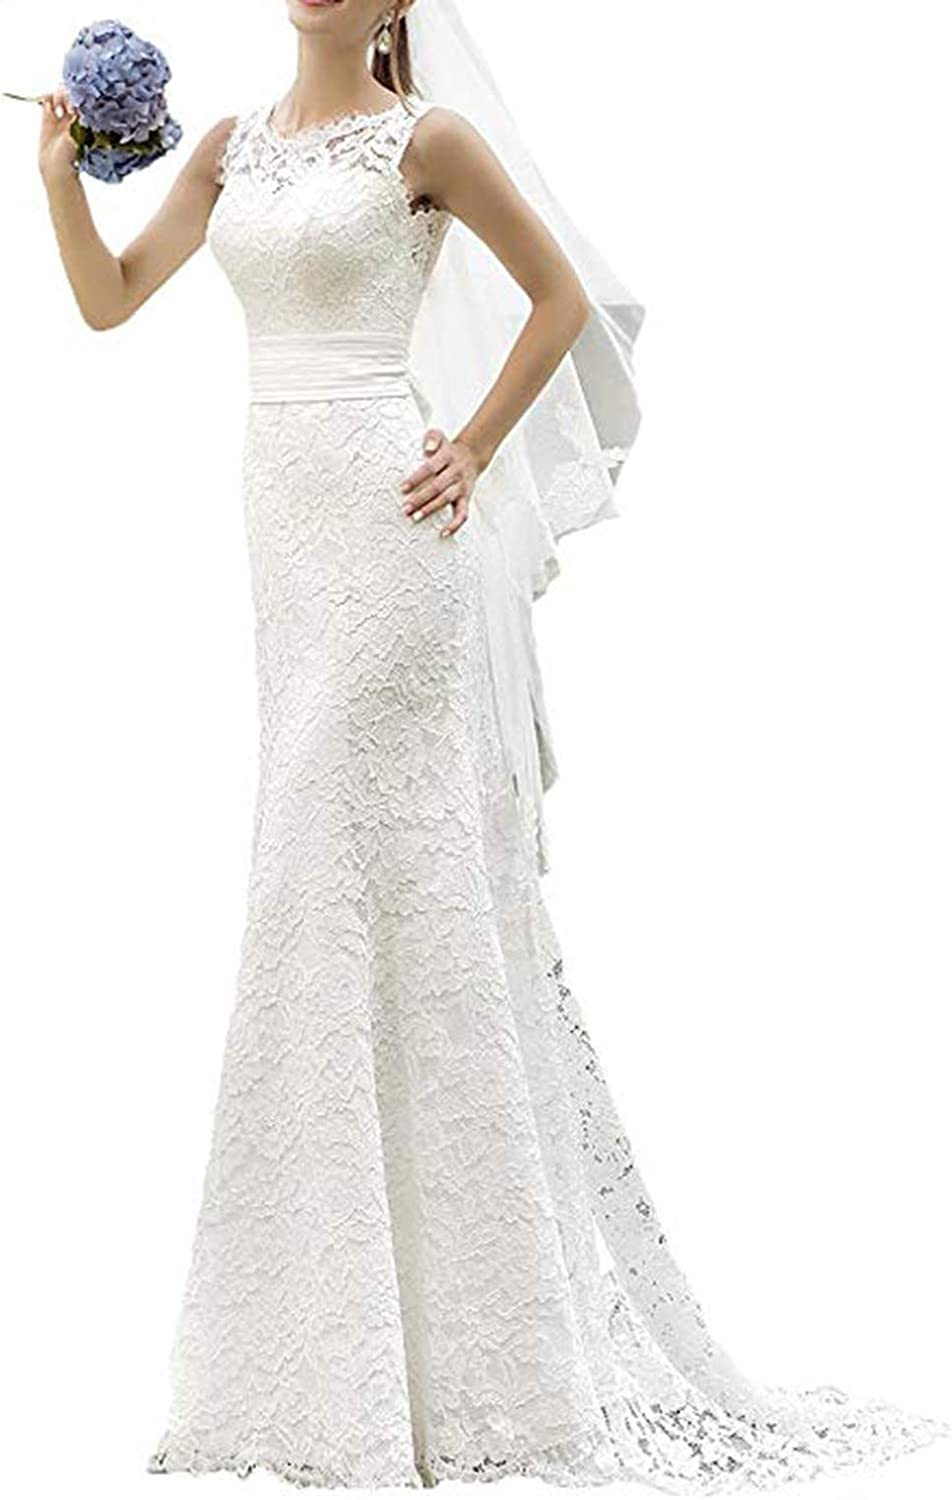 Ri Yun Women's Elegant Lace Mermaid Wedding Dresses for Bride 2019 Backless Beach Bridal Gowns